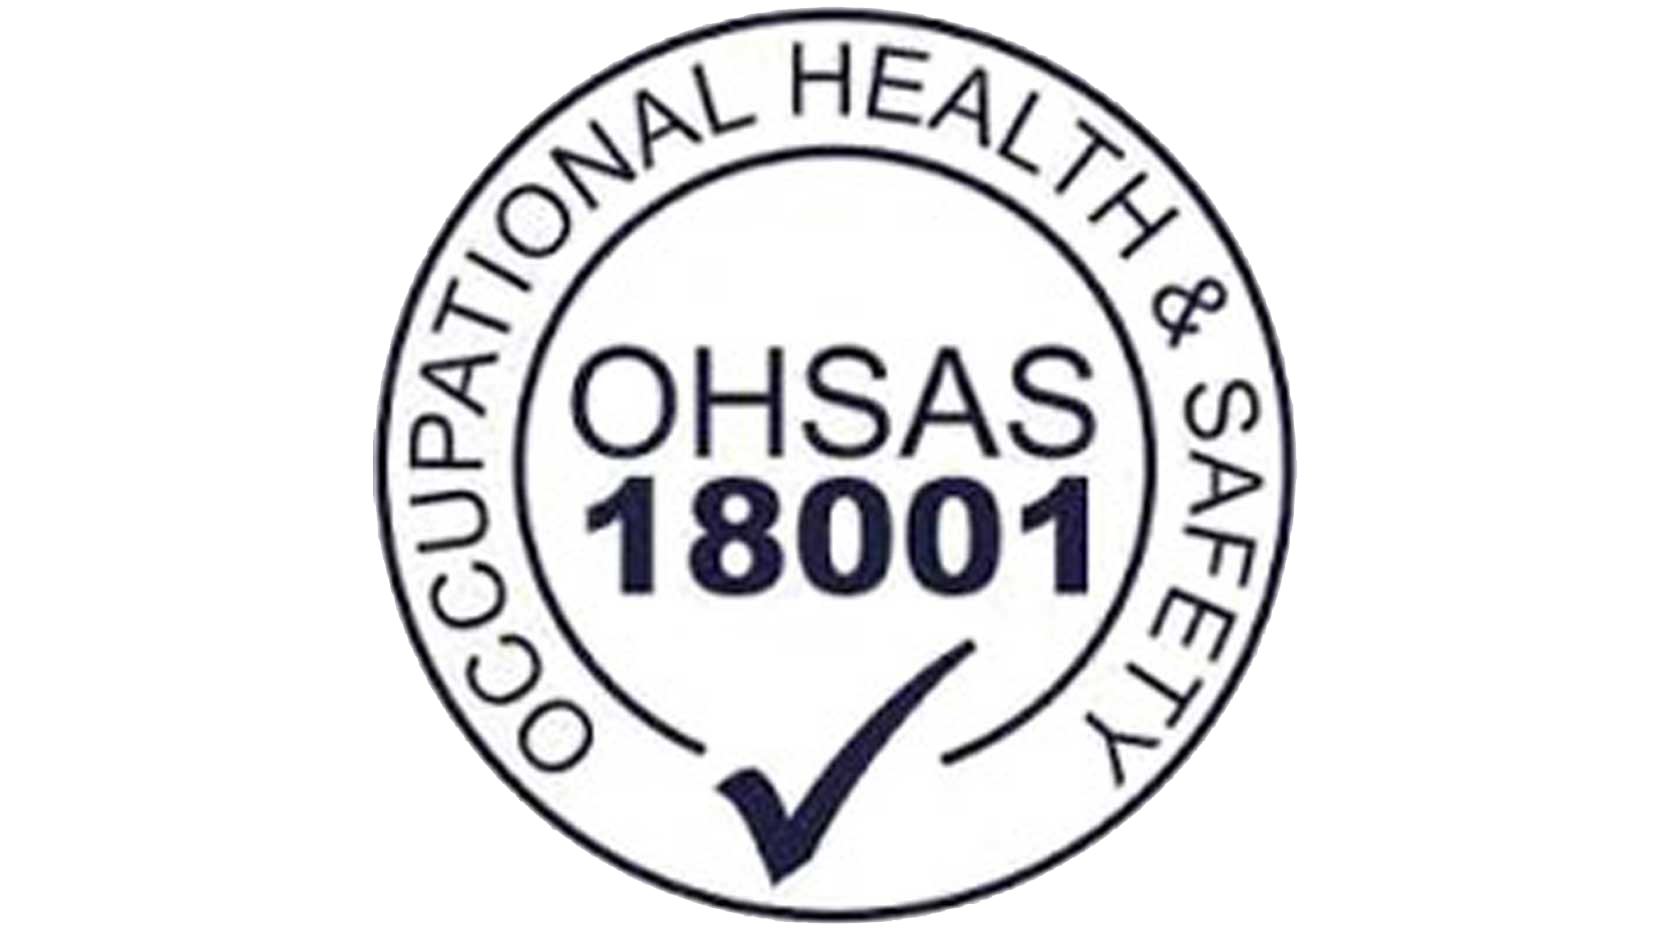 FAVPNG_ohsas-18001-iso-9000-certification-iso-14000-management-system_BFAatVPk